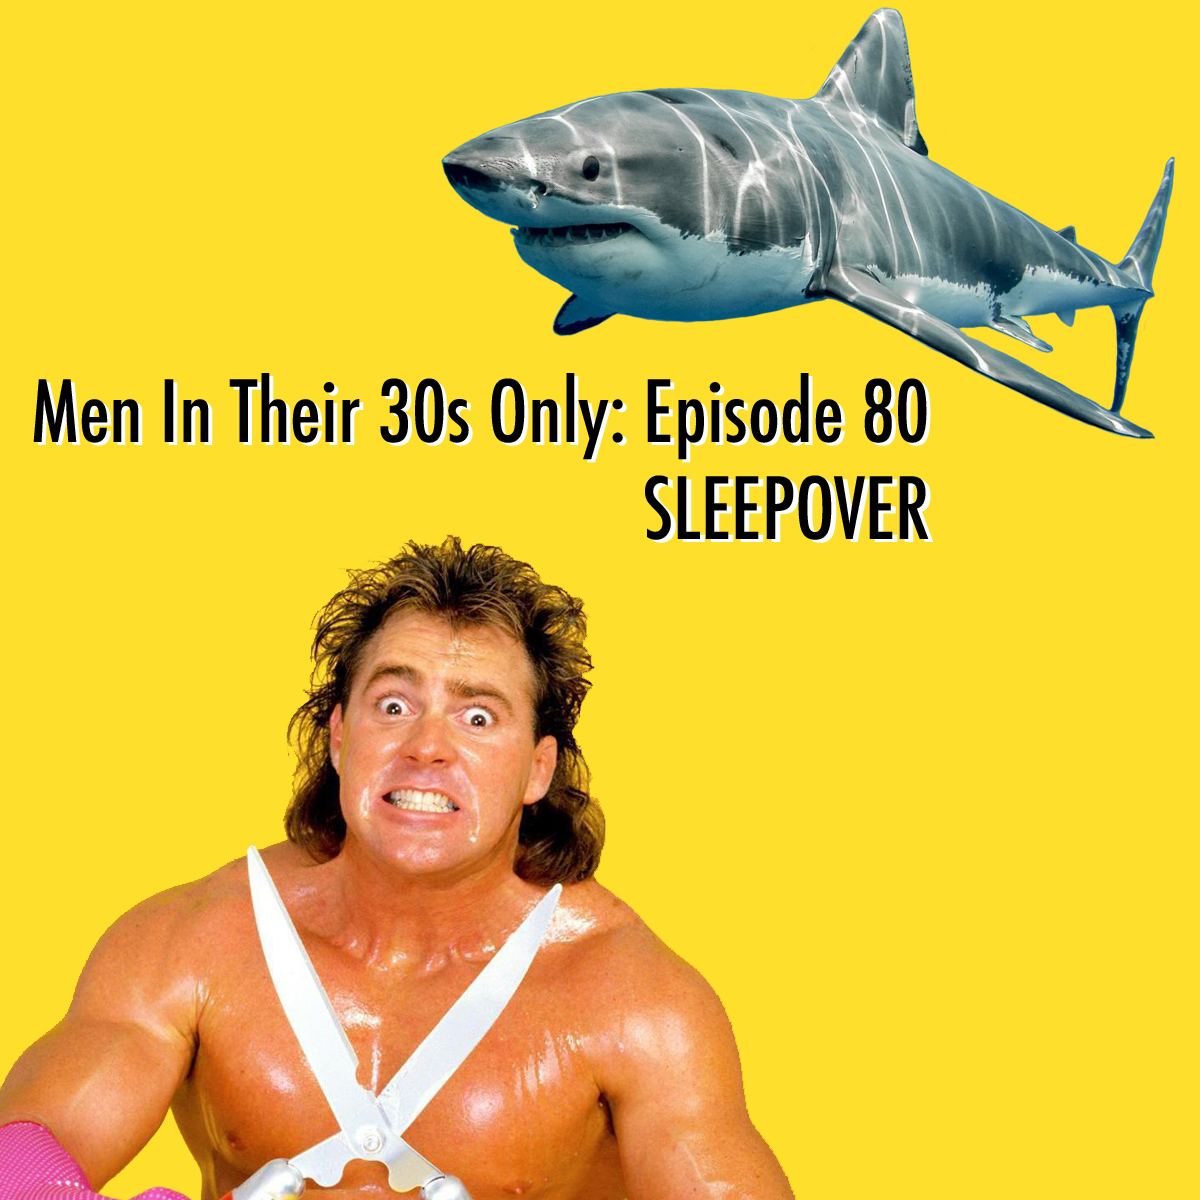 Men In Their 30s Only - Sleepover